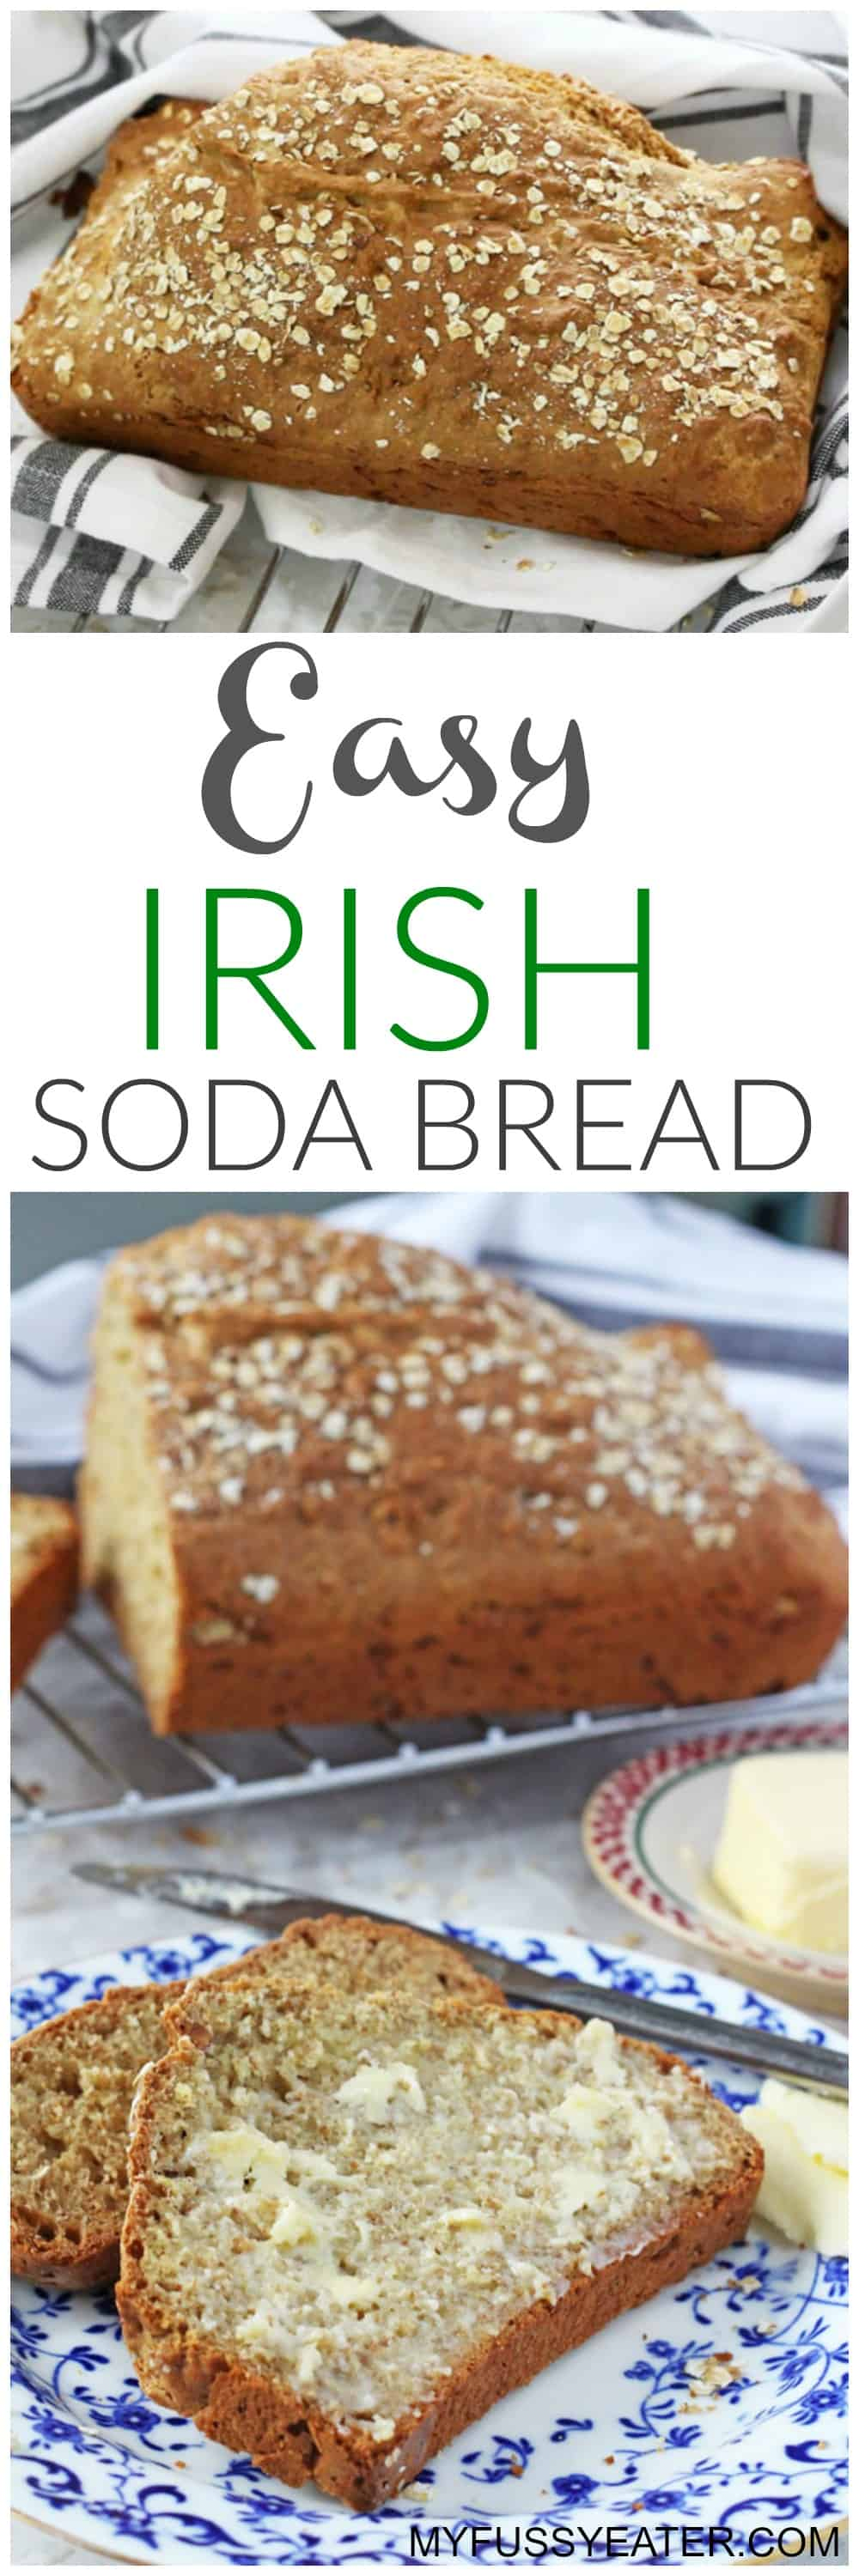 A really easy but also healthy recipe for traditional Irish Soda Bread | My Fussy Eater blog